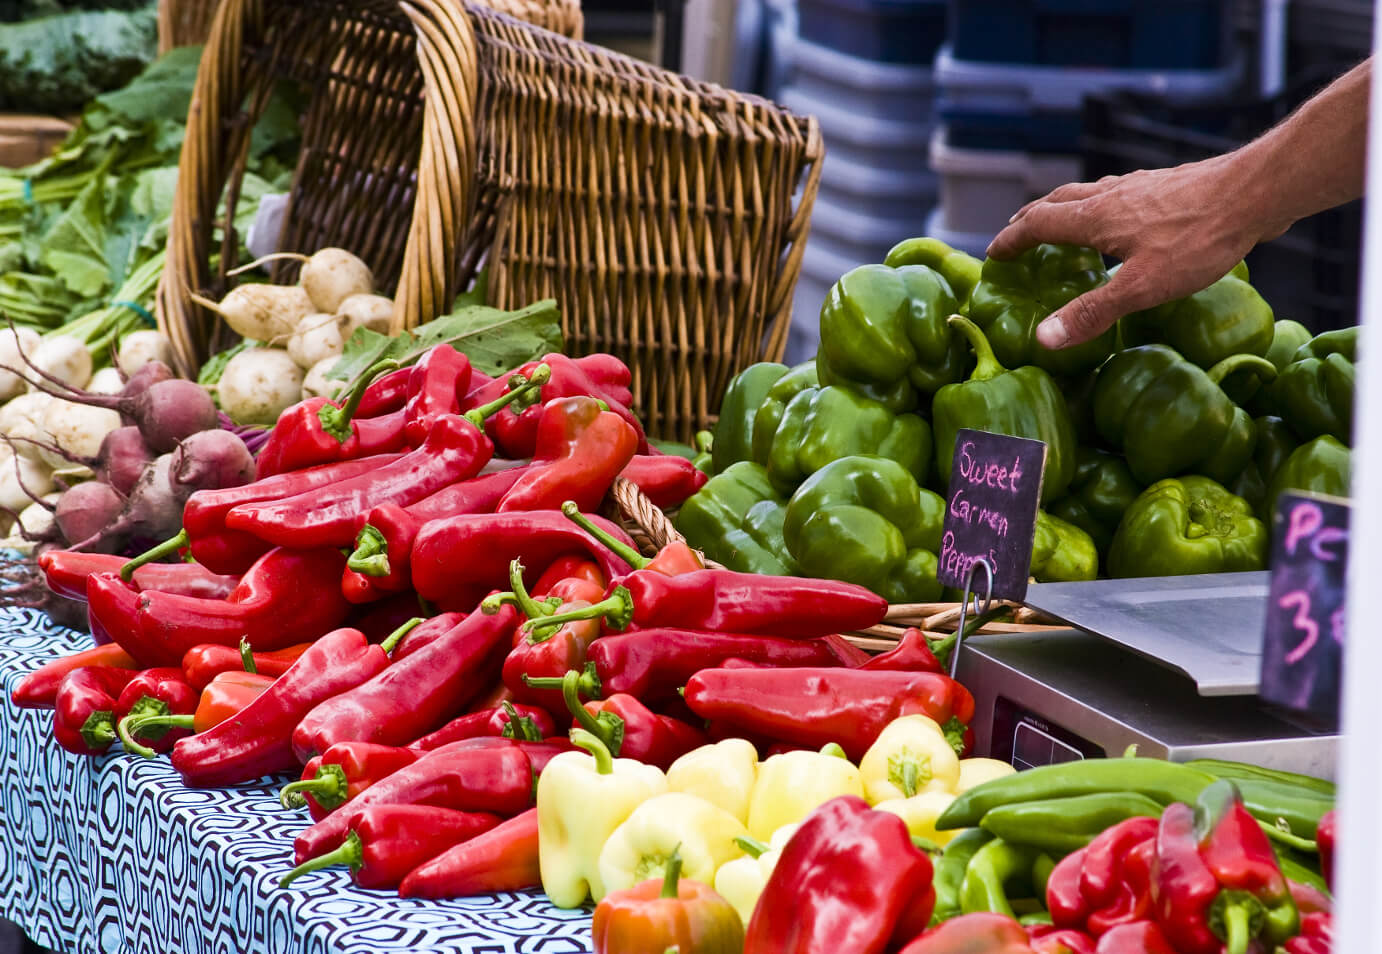 peppers-at-farmers-market-shutterstock_38316478-1